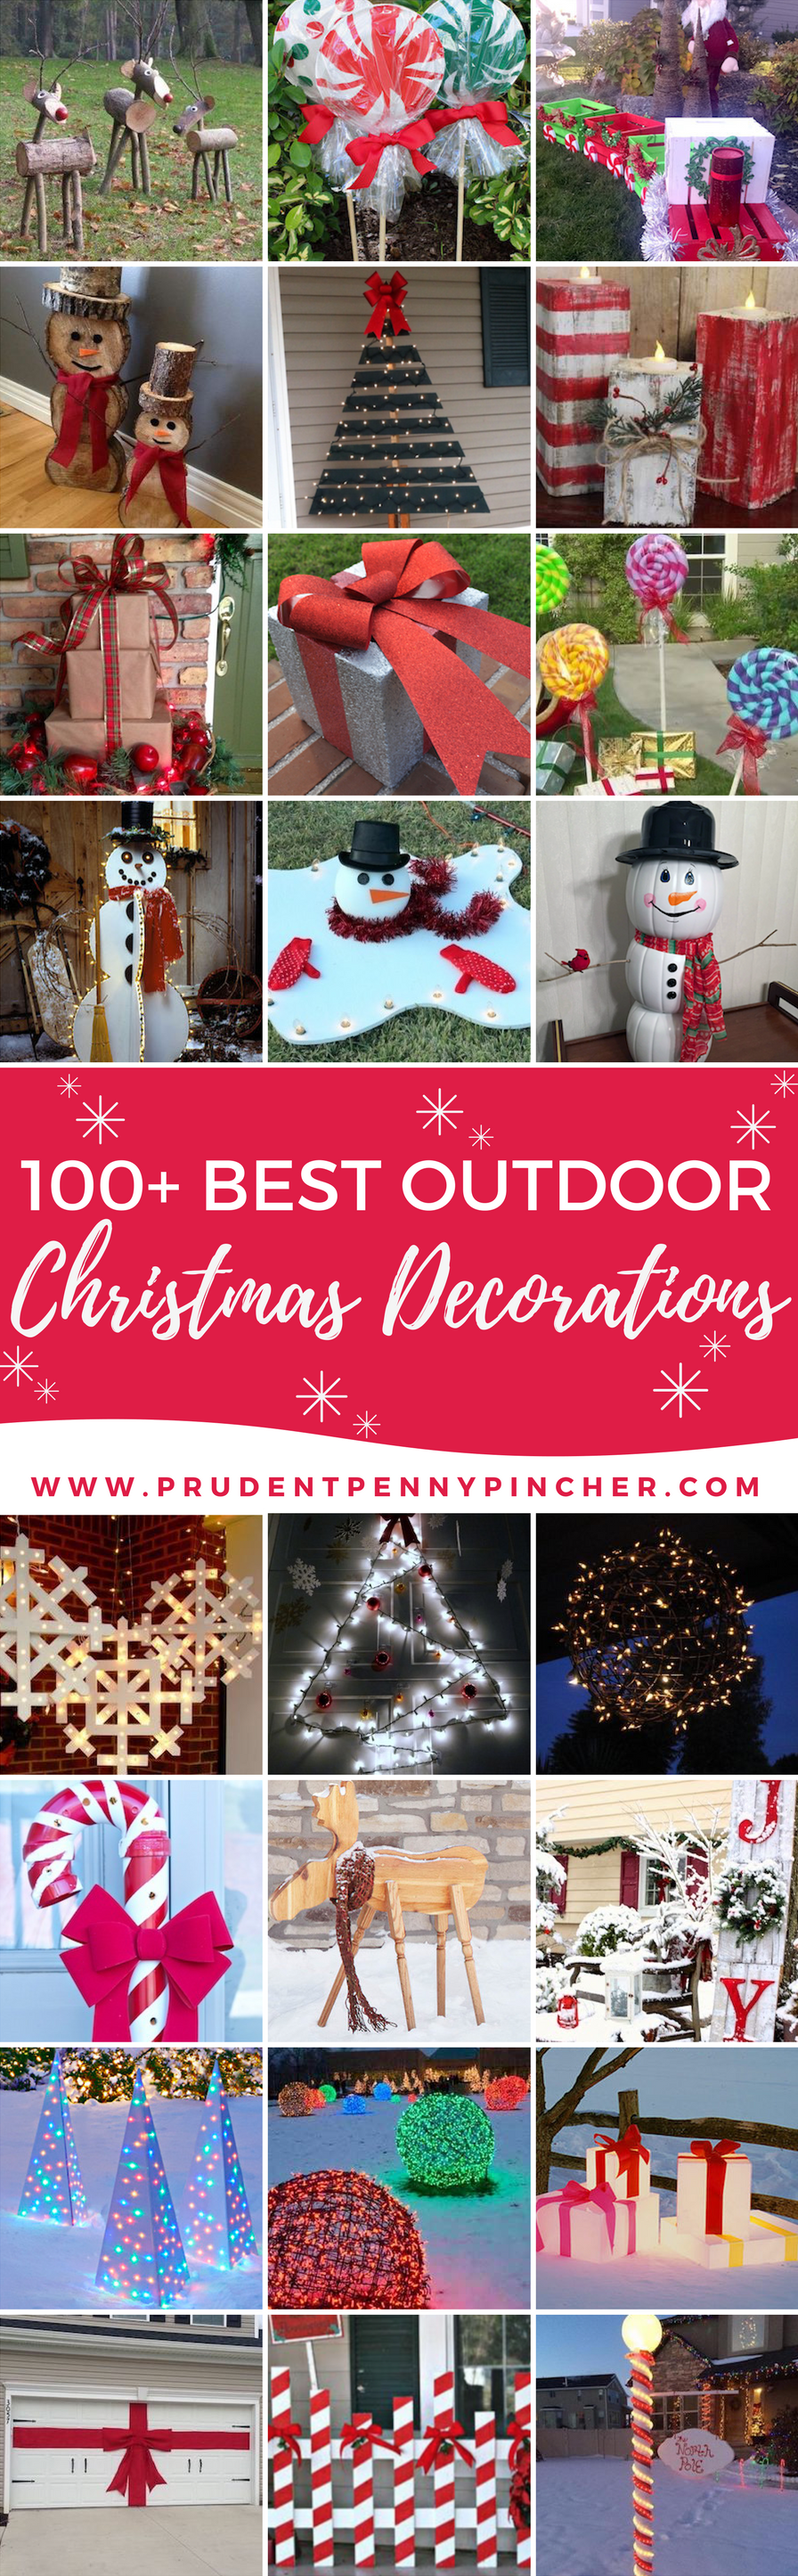 100 Best Outdoor DIY Christmas Decorations Prudent Penny Pincher